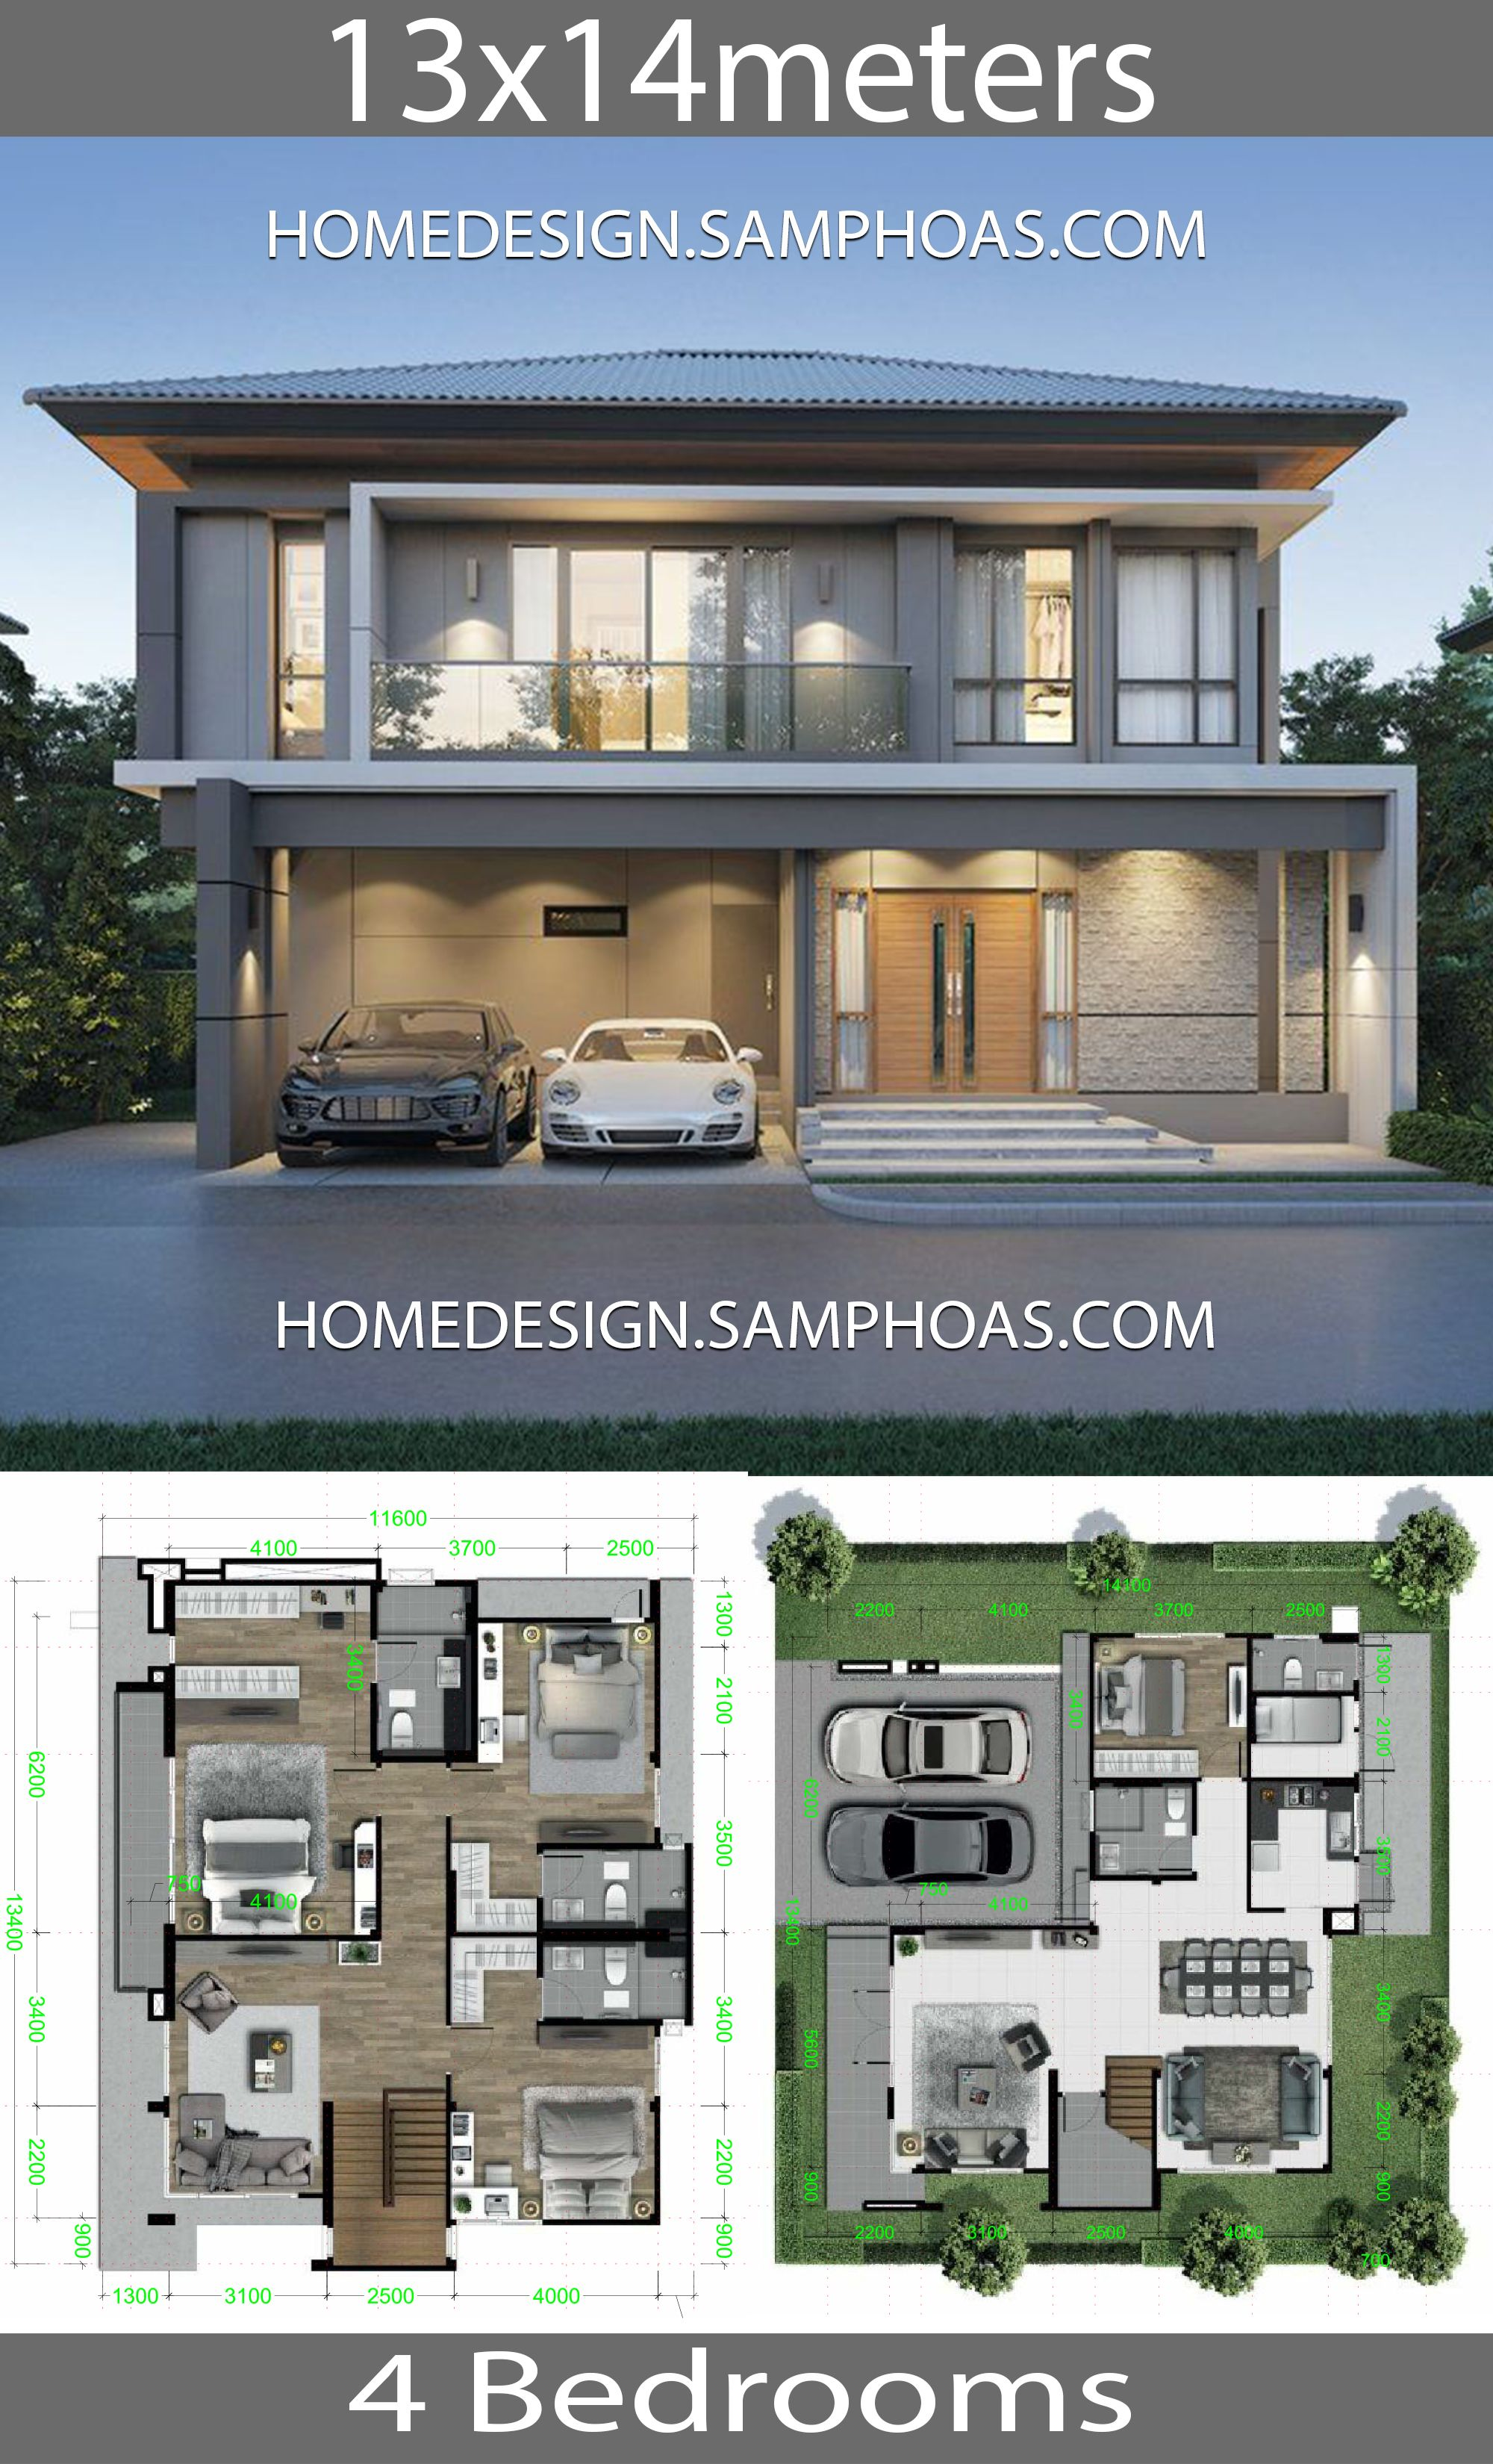 10 Best House Design Plans With Floor Plans House Plans 3d In 2020 House Front Design Two Story House Design Double Storey House Plans